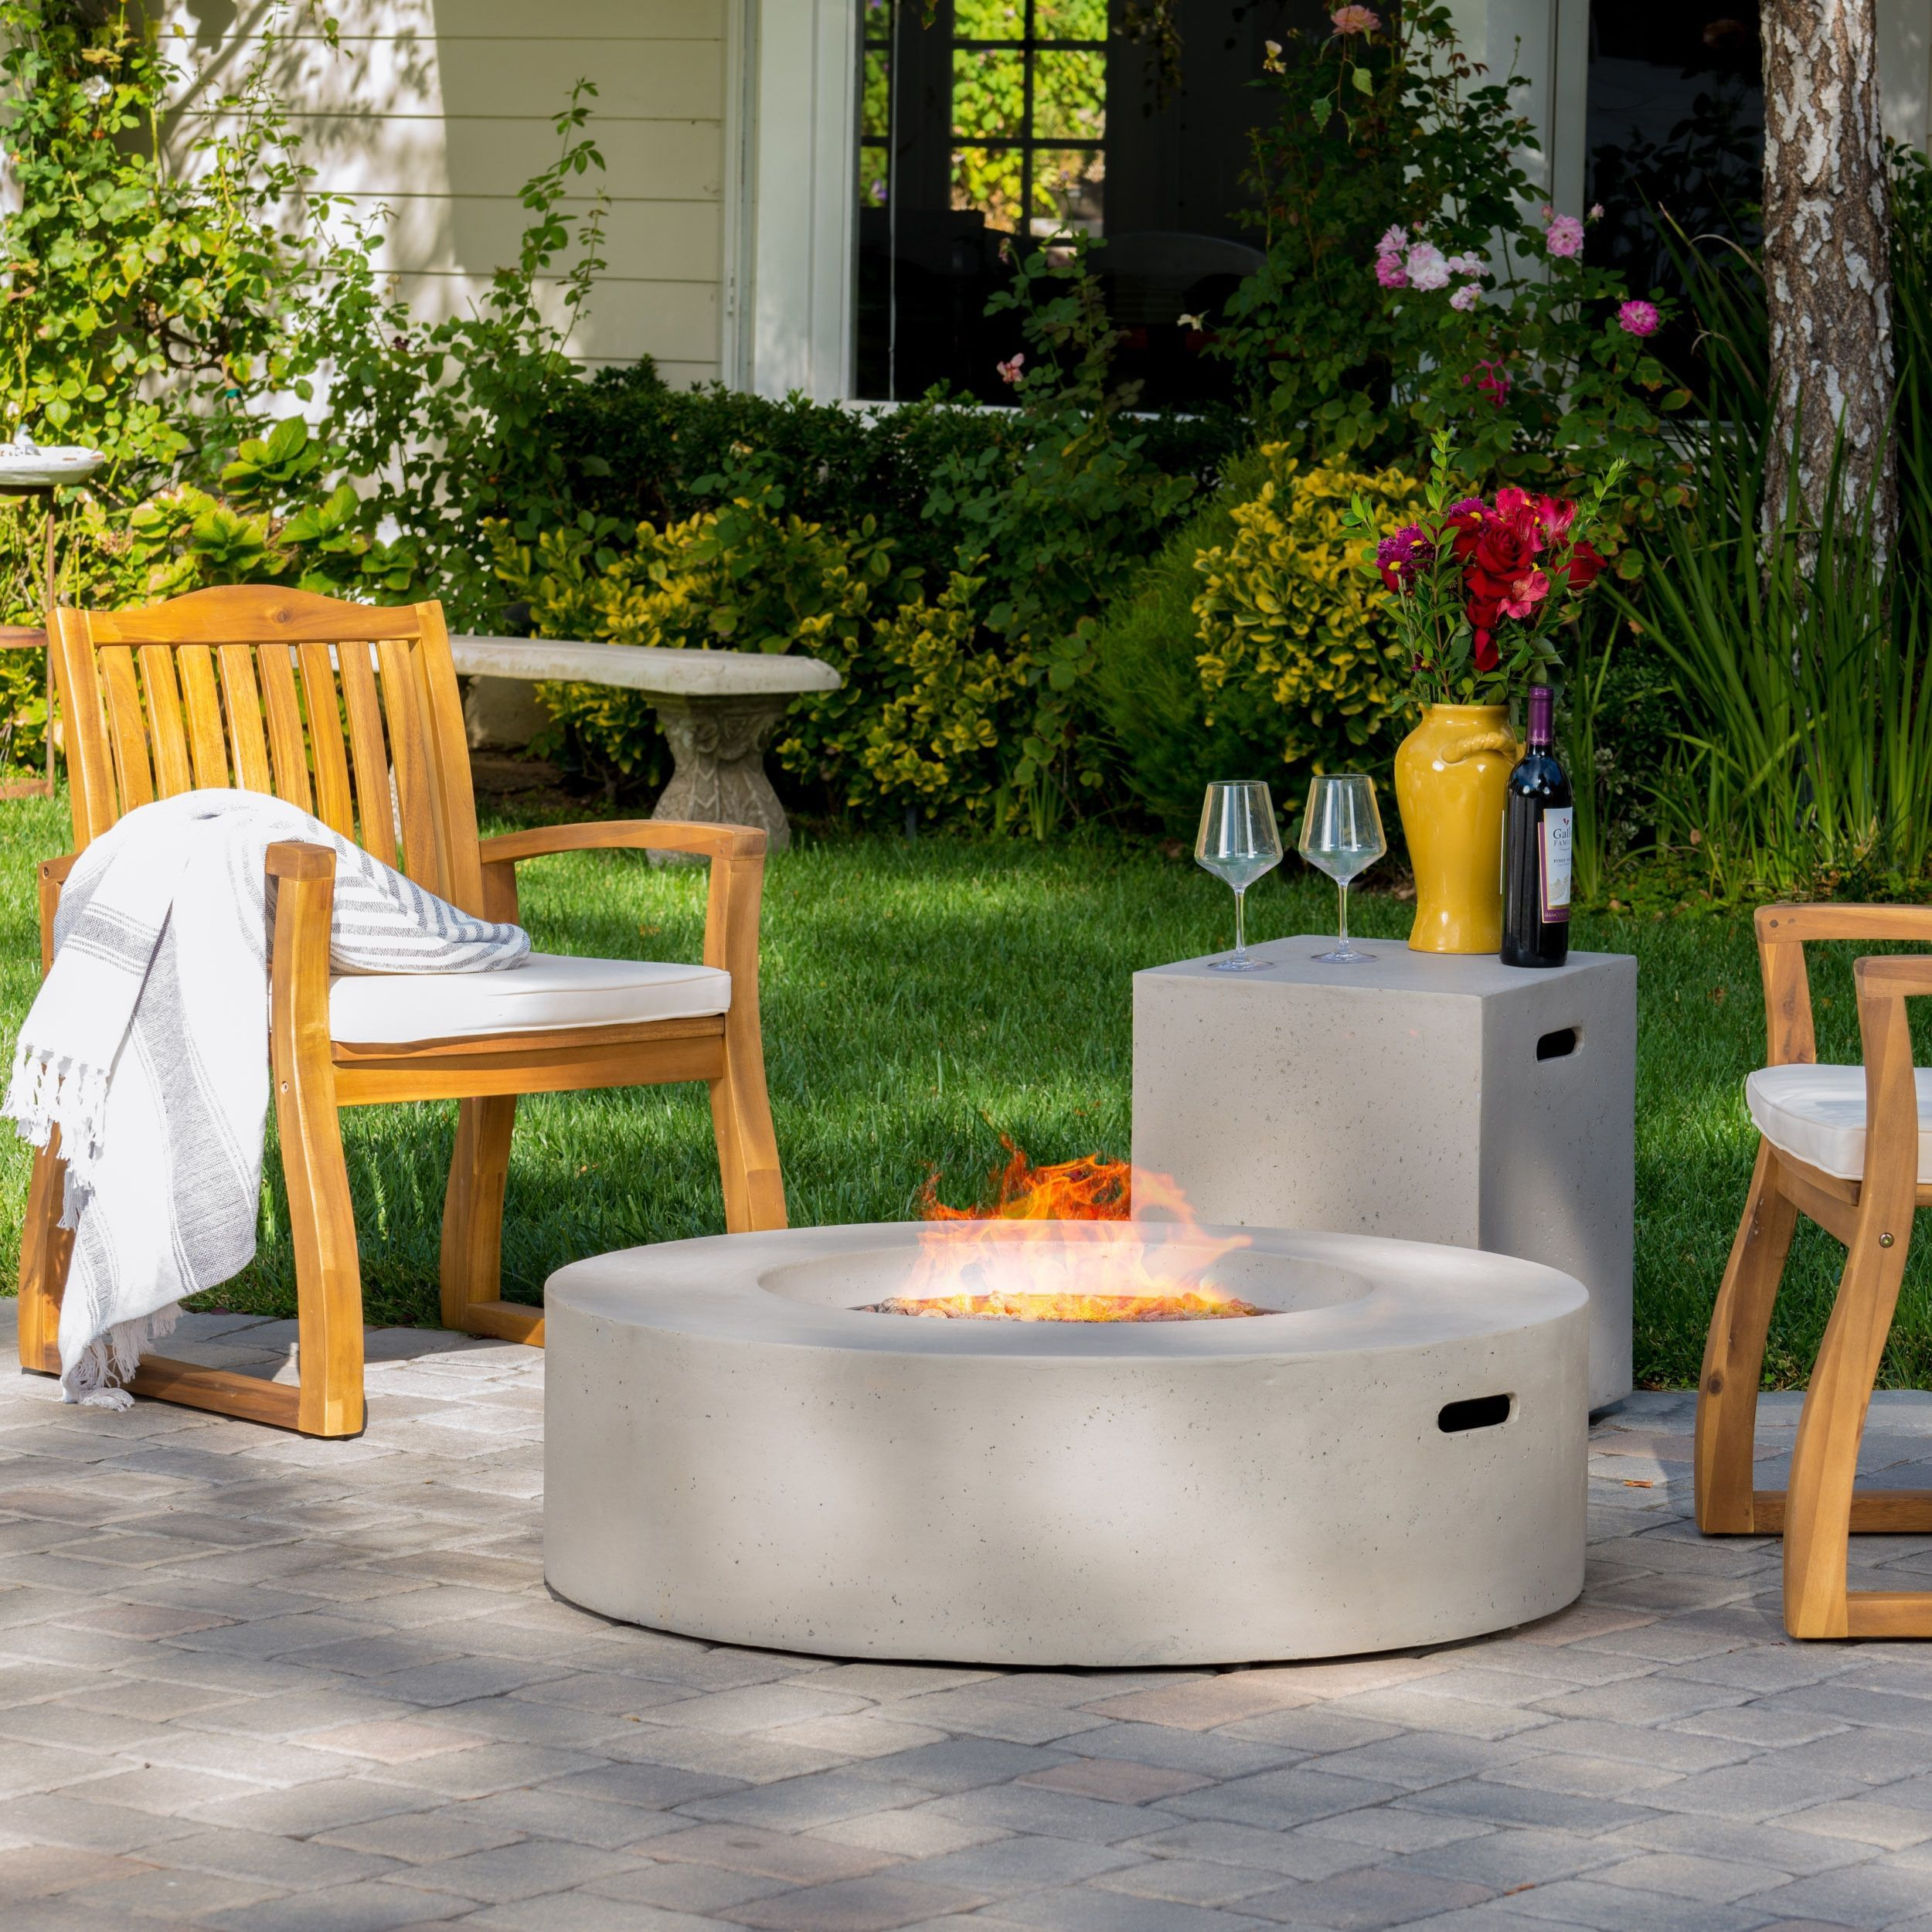 santos outdoor circular propane fire pit table with tank holder by